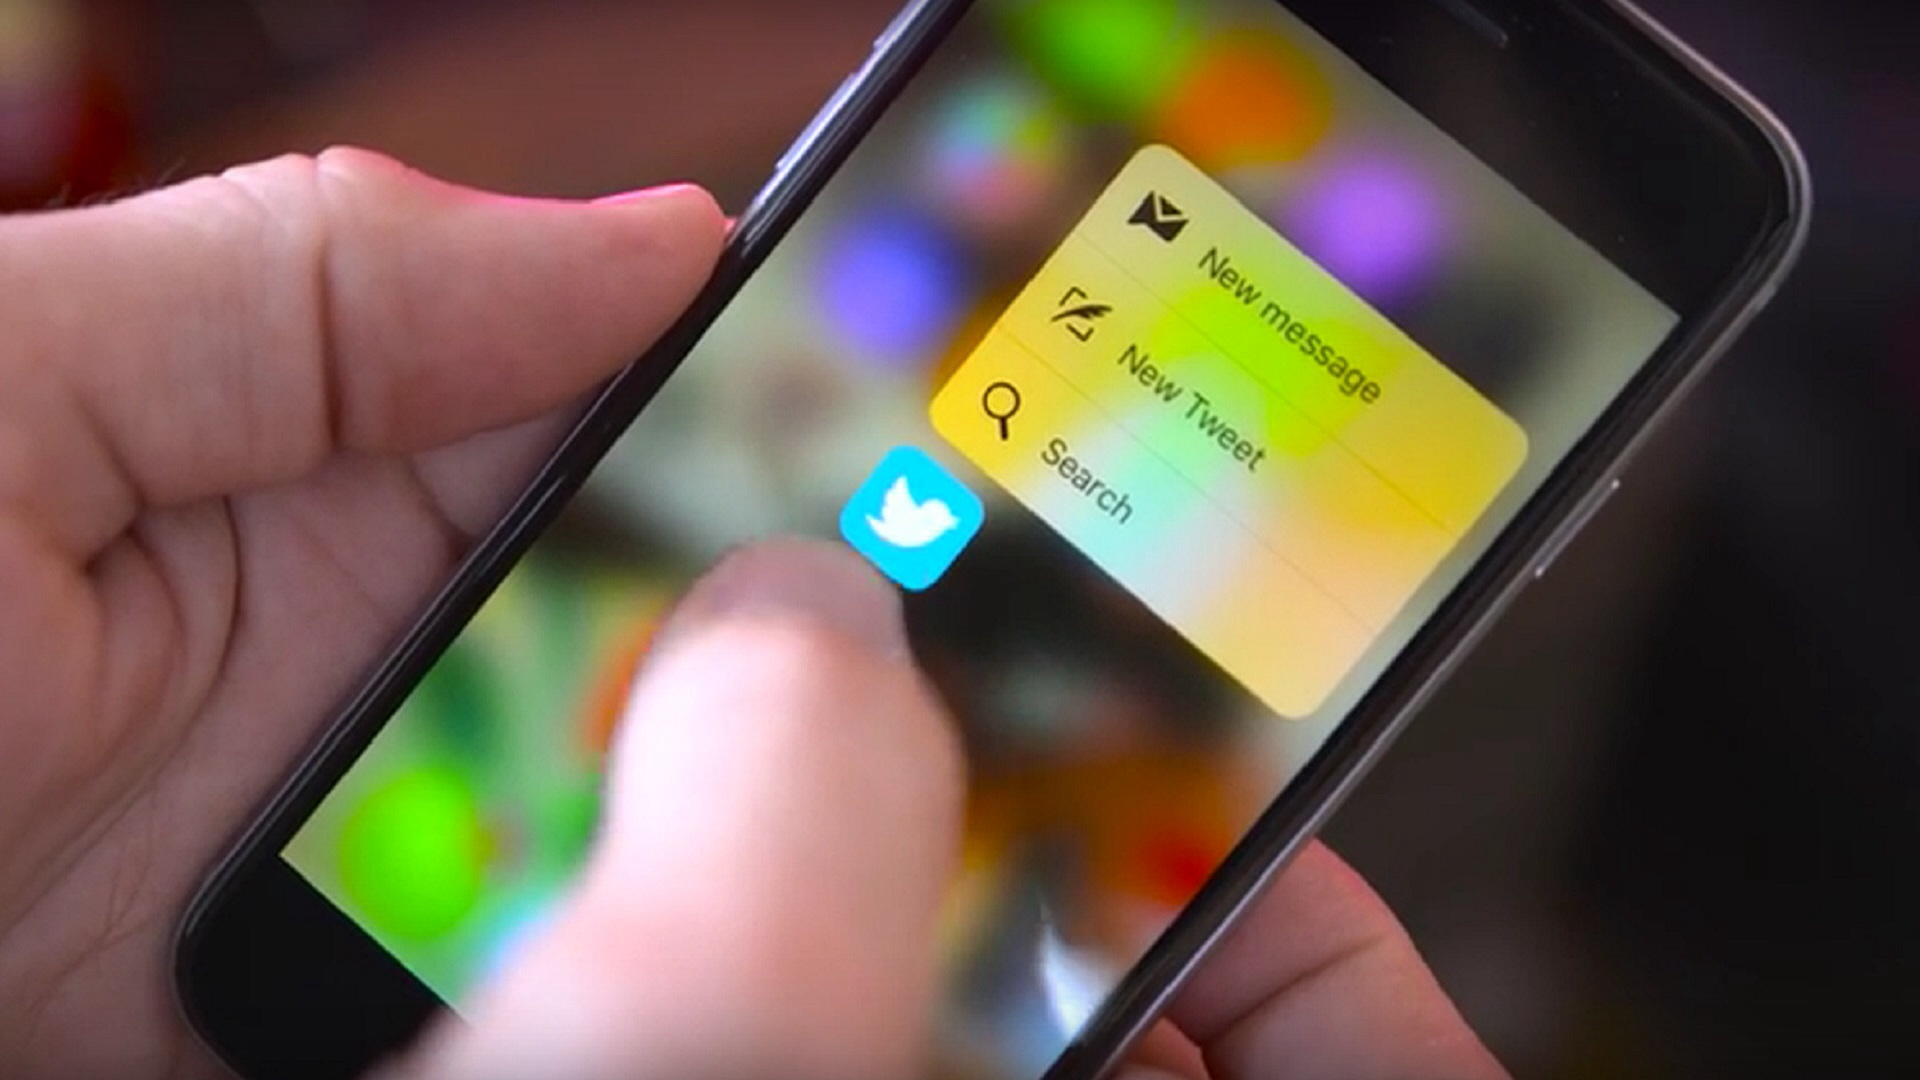 New Videos Show More of 3D Touch in iPhone 6S and 6S Plus